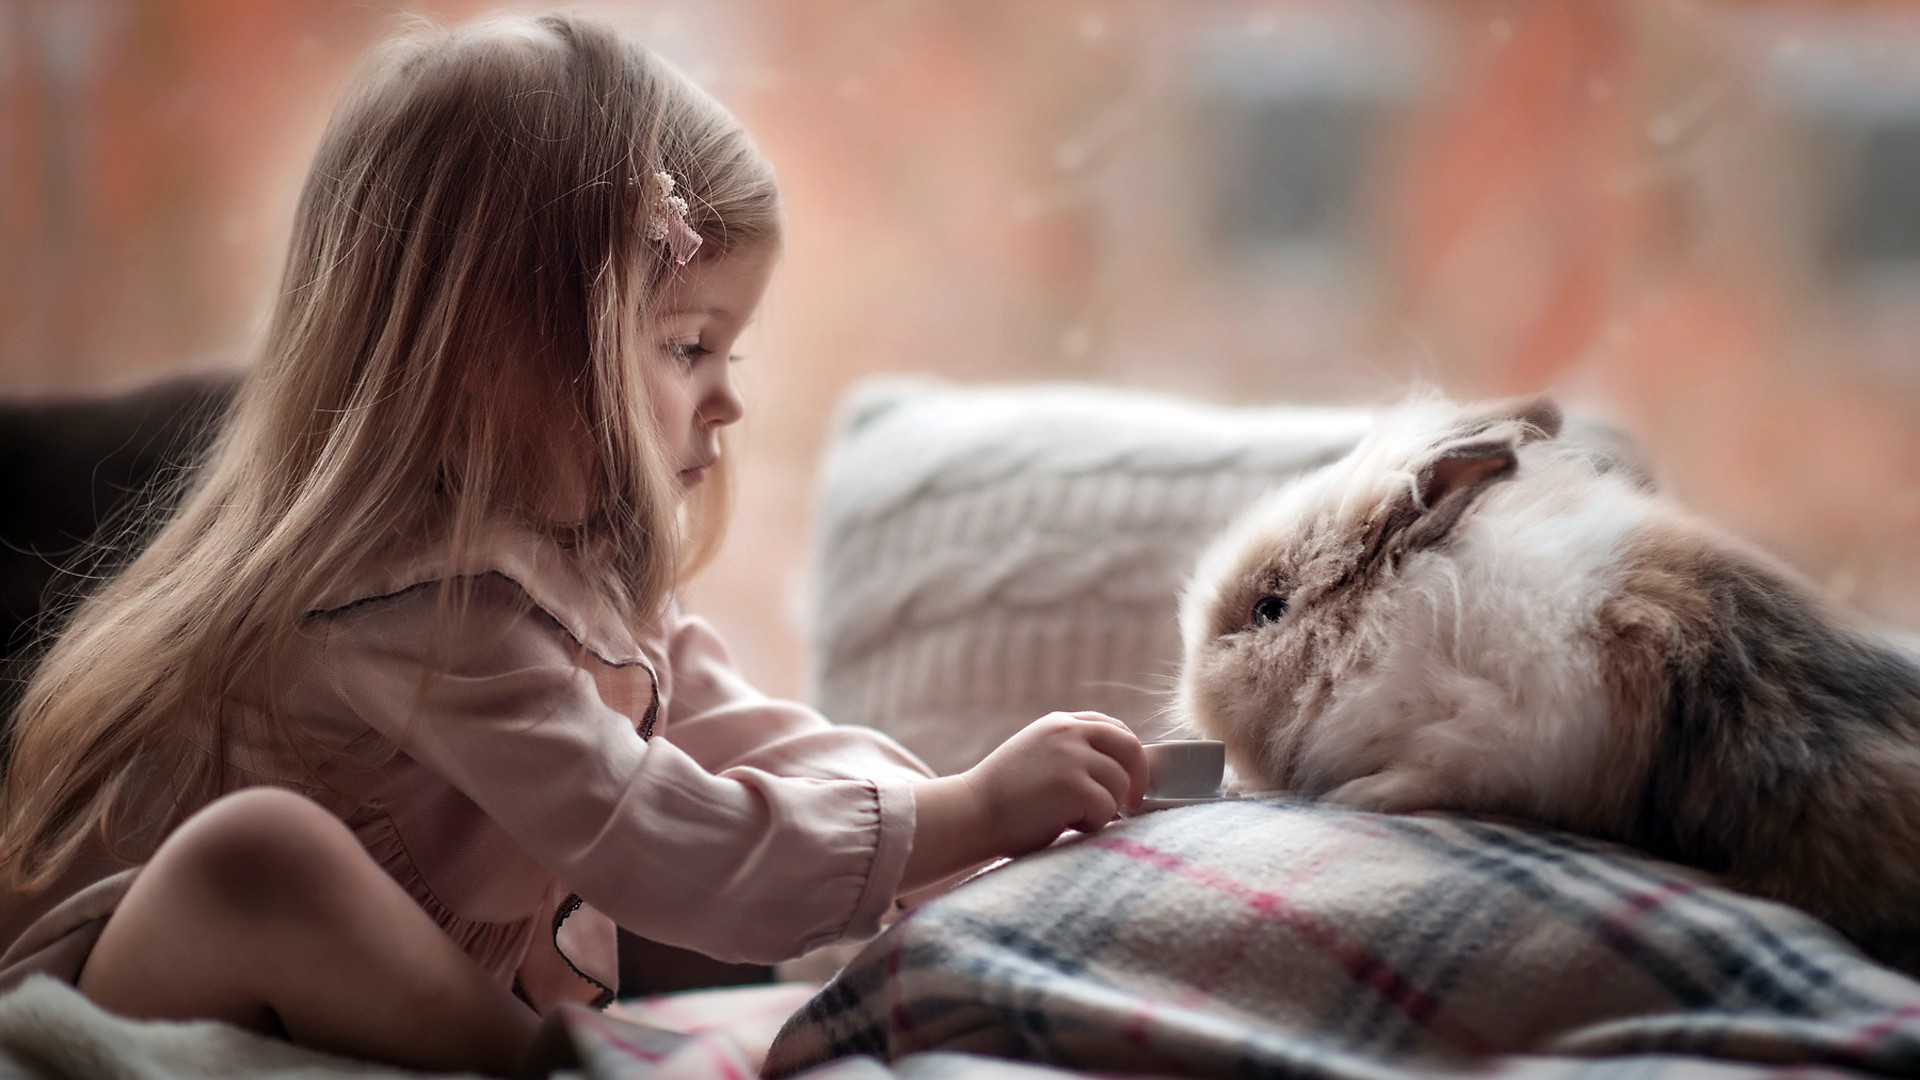 Latest Cute Baby Wallpaper Cute Girl Playing With Rabbit Wallpapers Hd Wallpapers